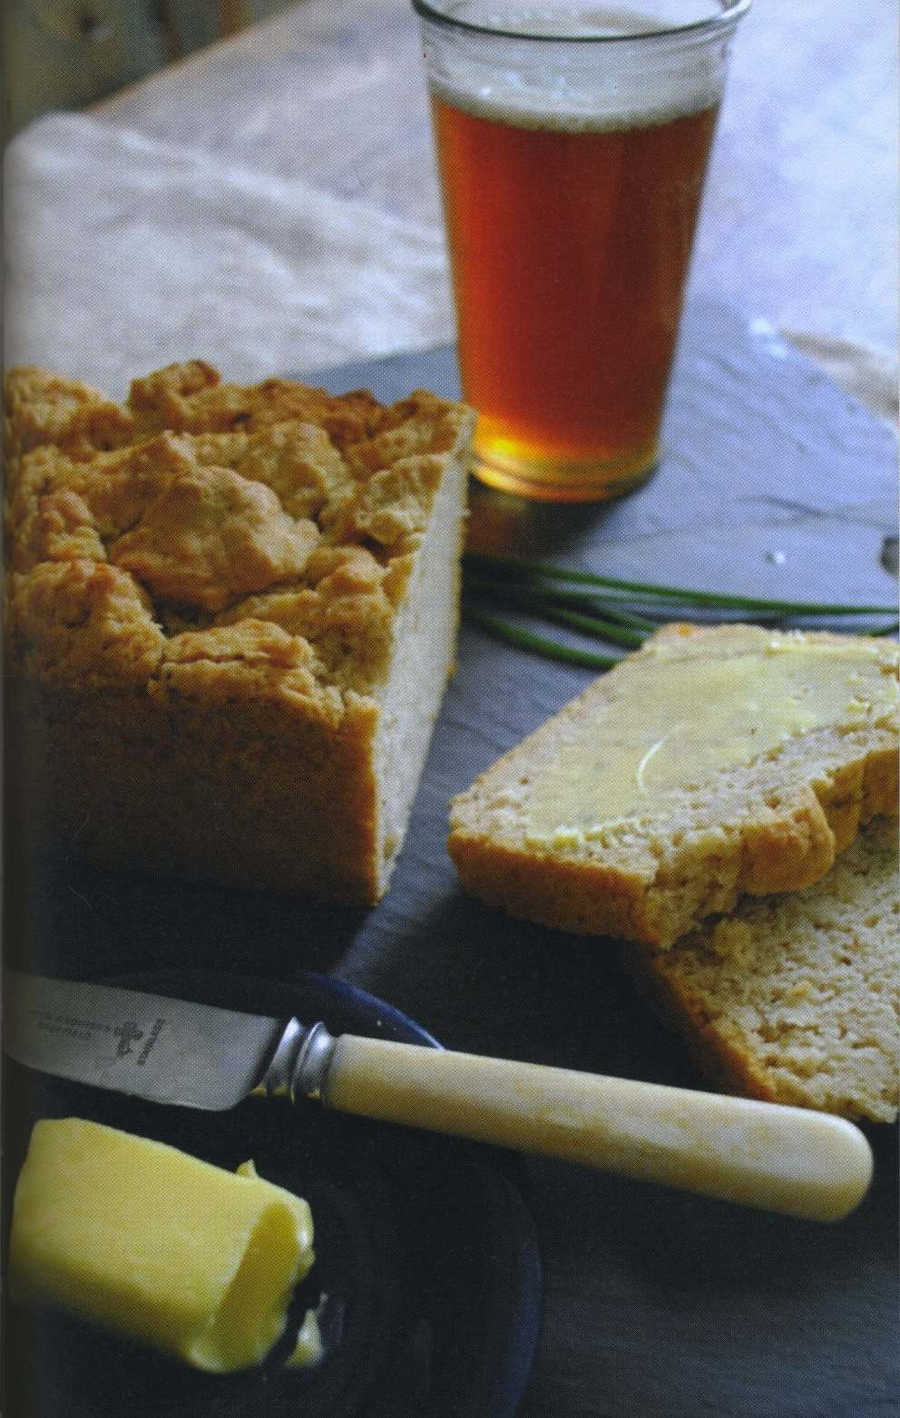 Cheddar, Chive and Red Ale Bread